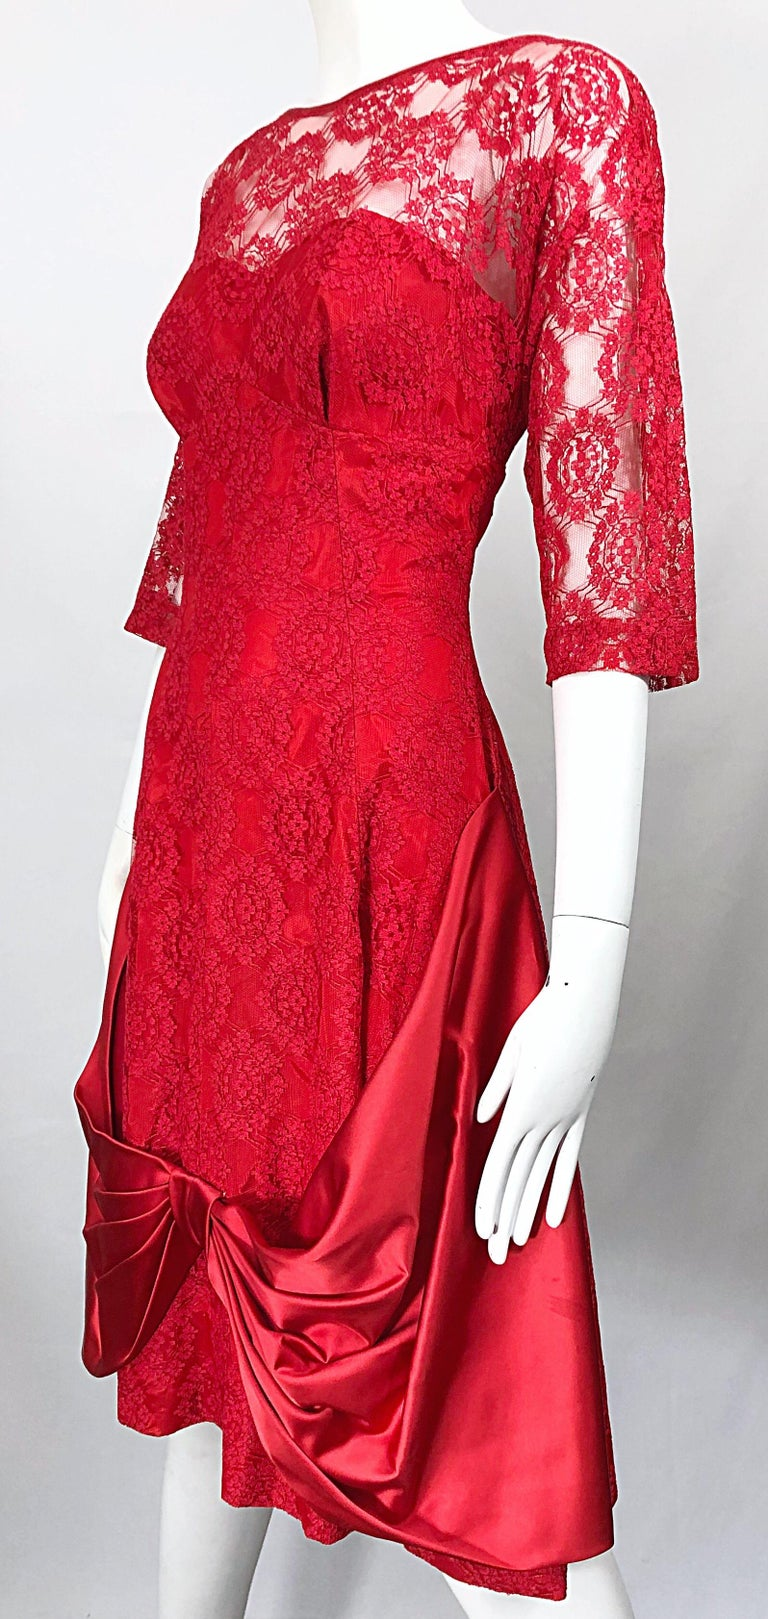 1950s Demi Couture Lips Stick Red Silk Lace 3/4 Sleeve Vintage 50s Dress For Sale 2